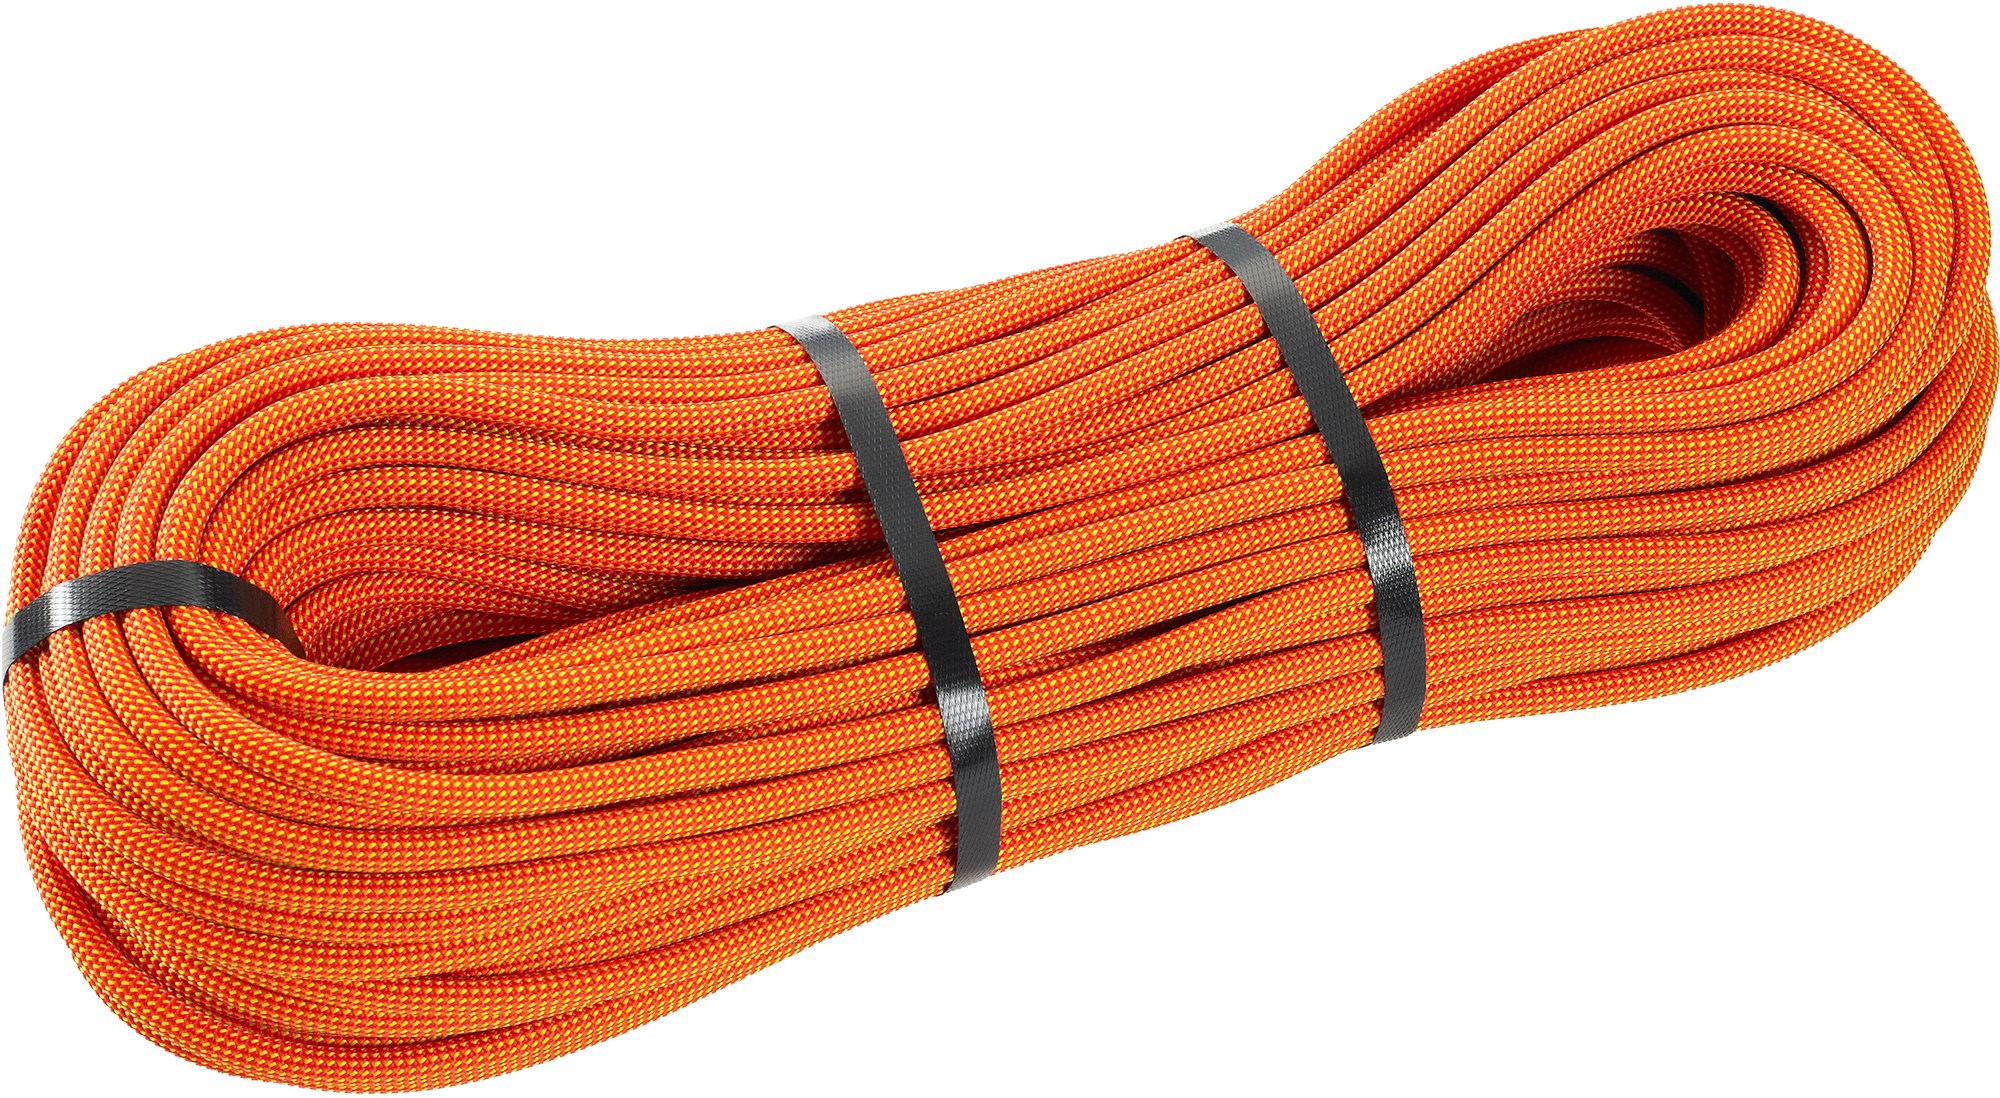 Maxim Alex Honnold Series Airliner 9.1mm x 70m Dry Rope